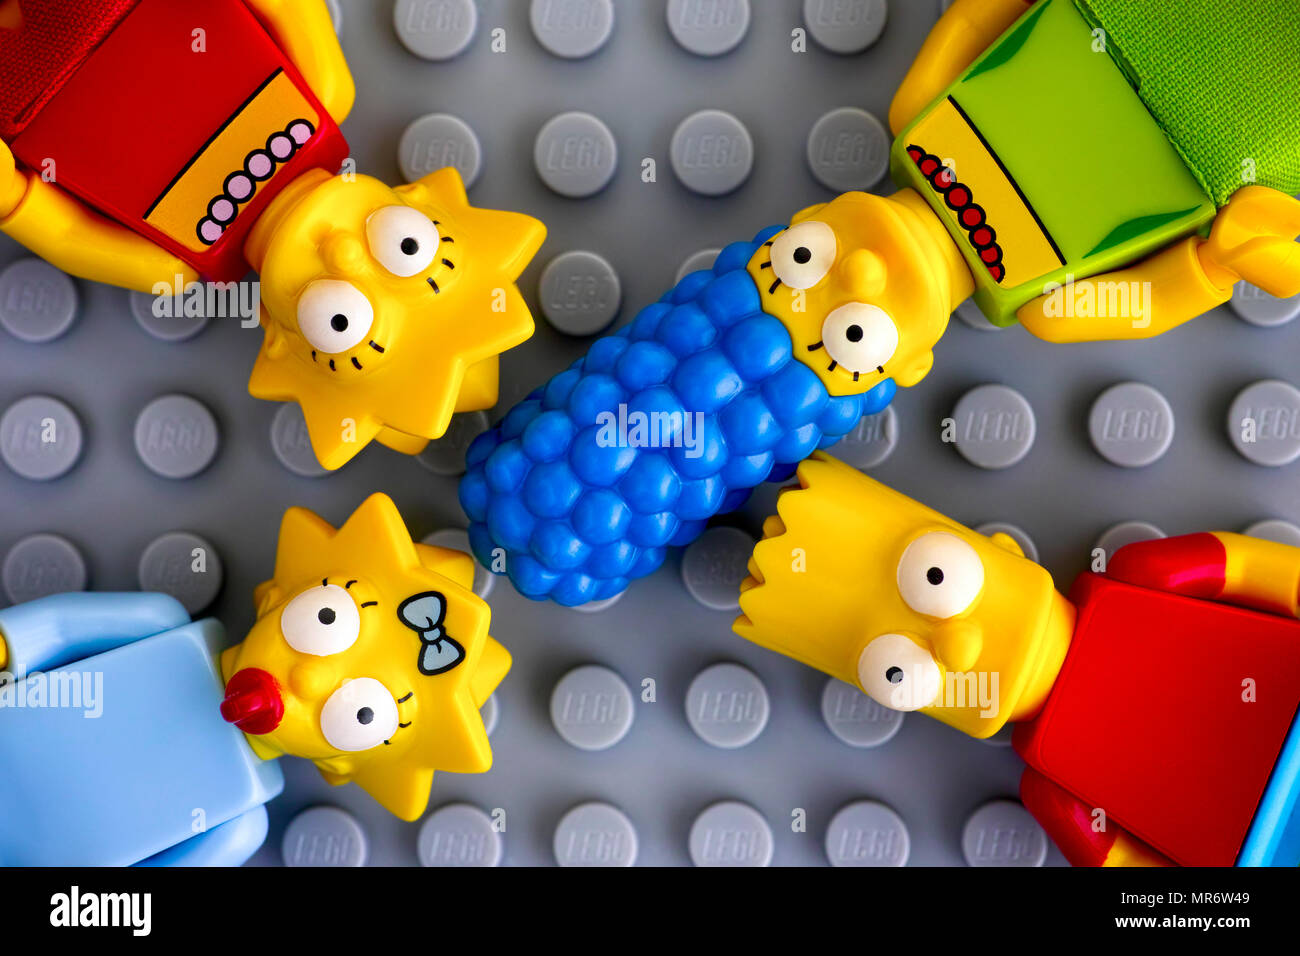 Tambov, Russian Federation - May 20, 2018 Four Lego Simpsons minifigures - Marge, Bart, Lisa, and Maggie, on gray background. Studio shot. - Stock Image